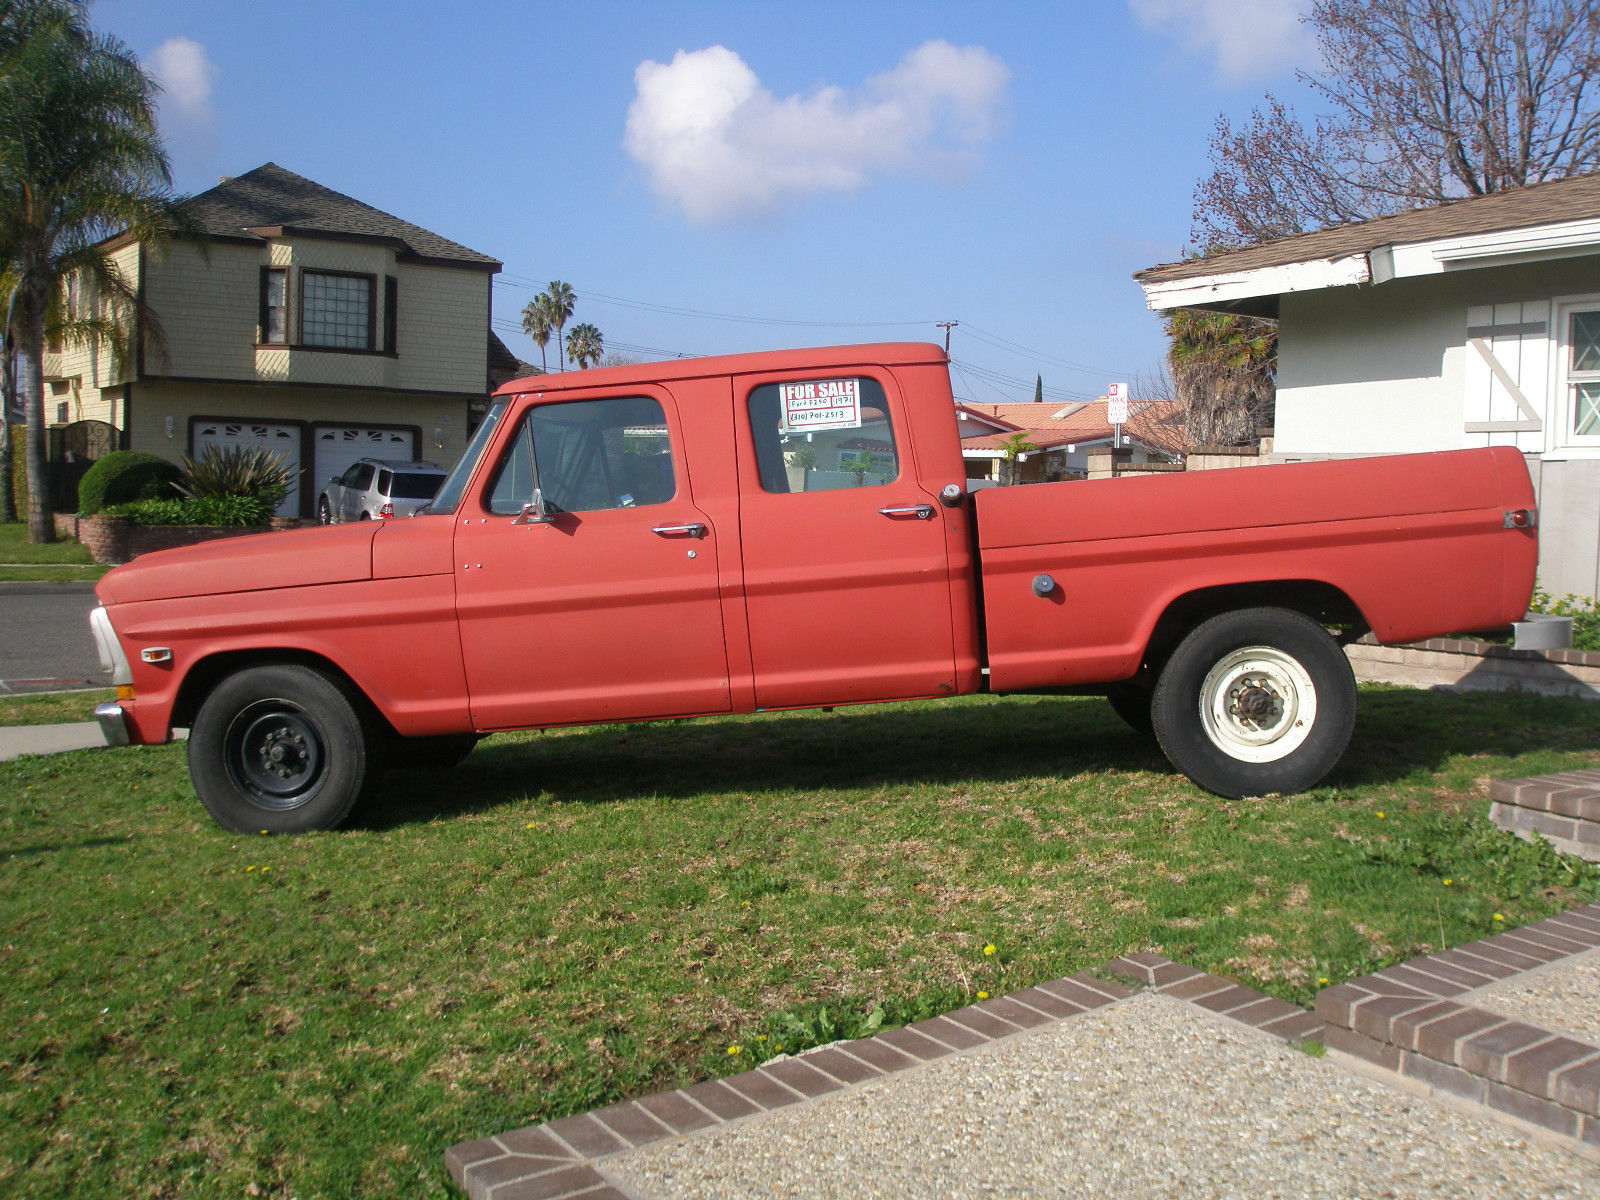 1971 ford f 250 4 door crew cab 390 f250 classic ford f 250 1971 for sale. Black Bedroom Furniture Sets. Home Design Ideas